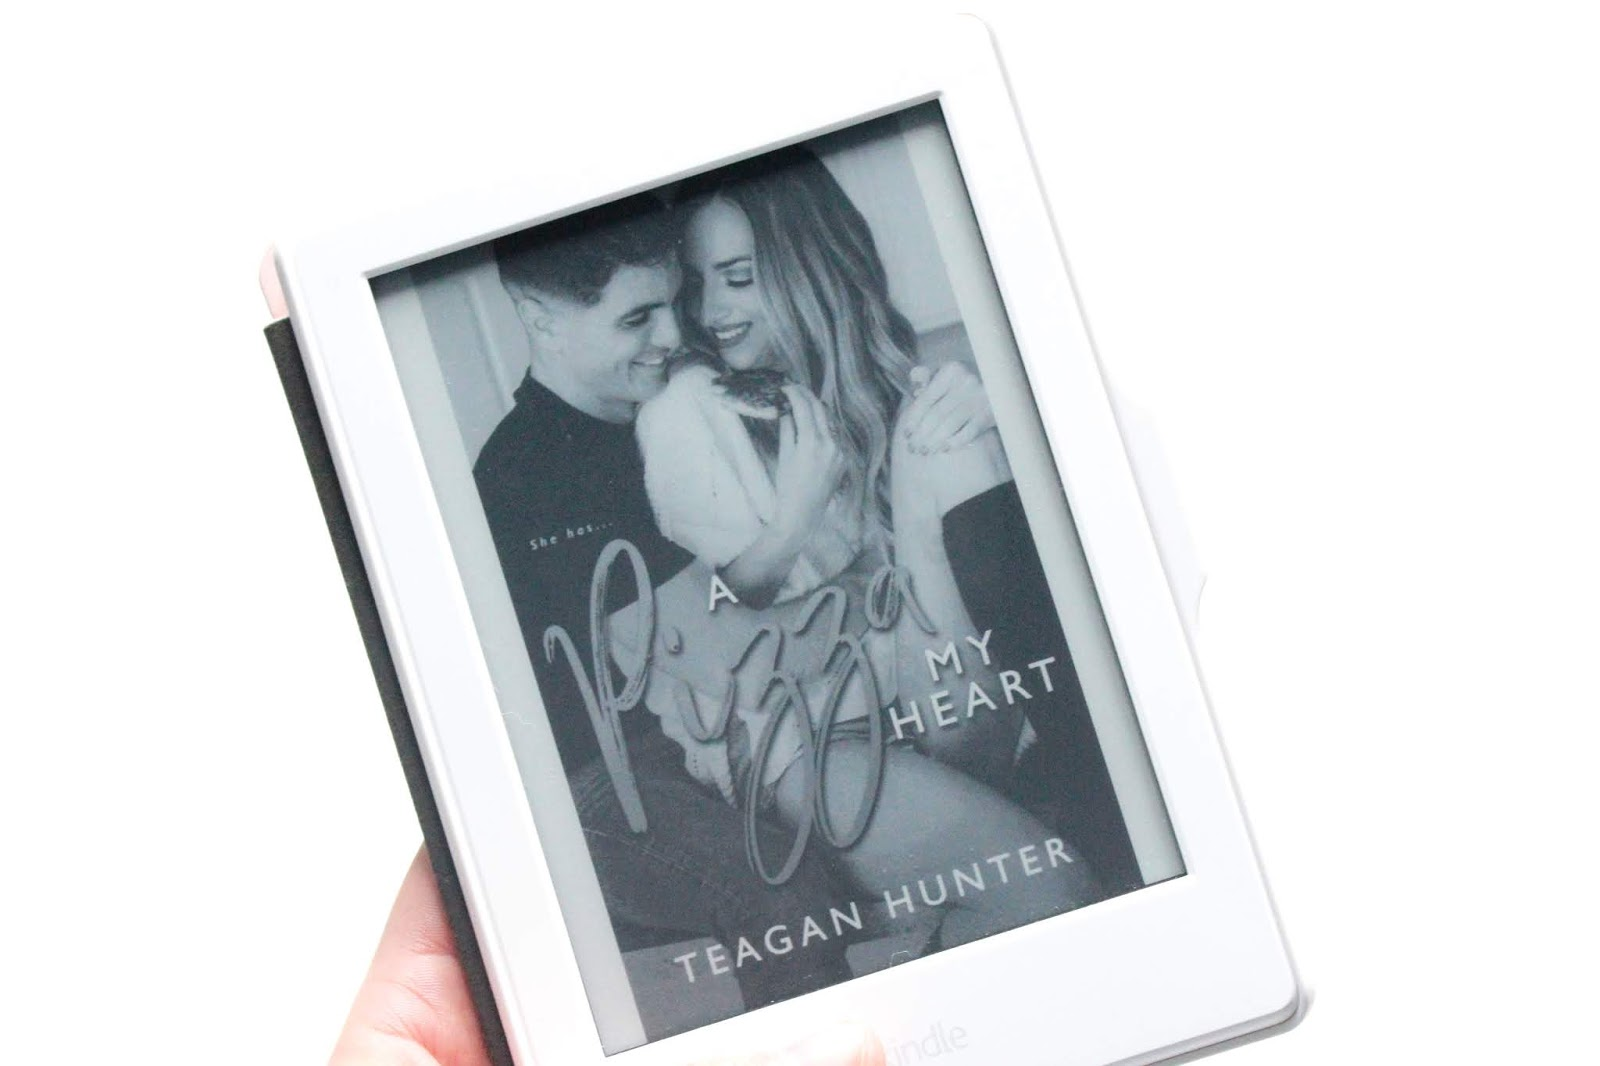 A Pizza My Heart - Teagan Hunter Book Review